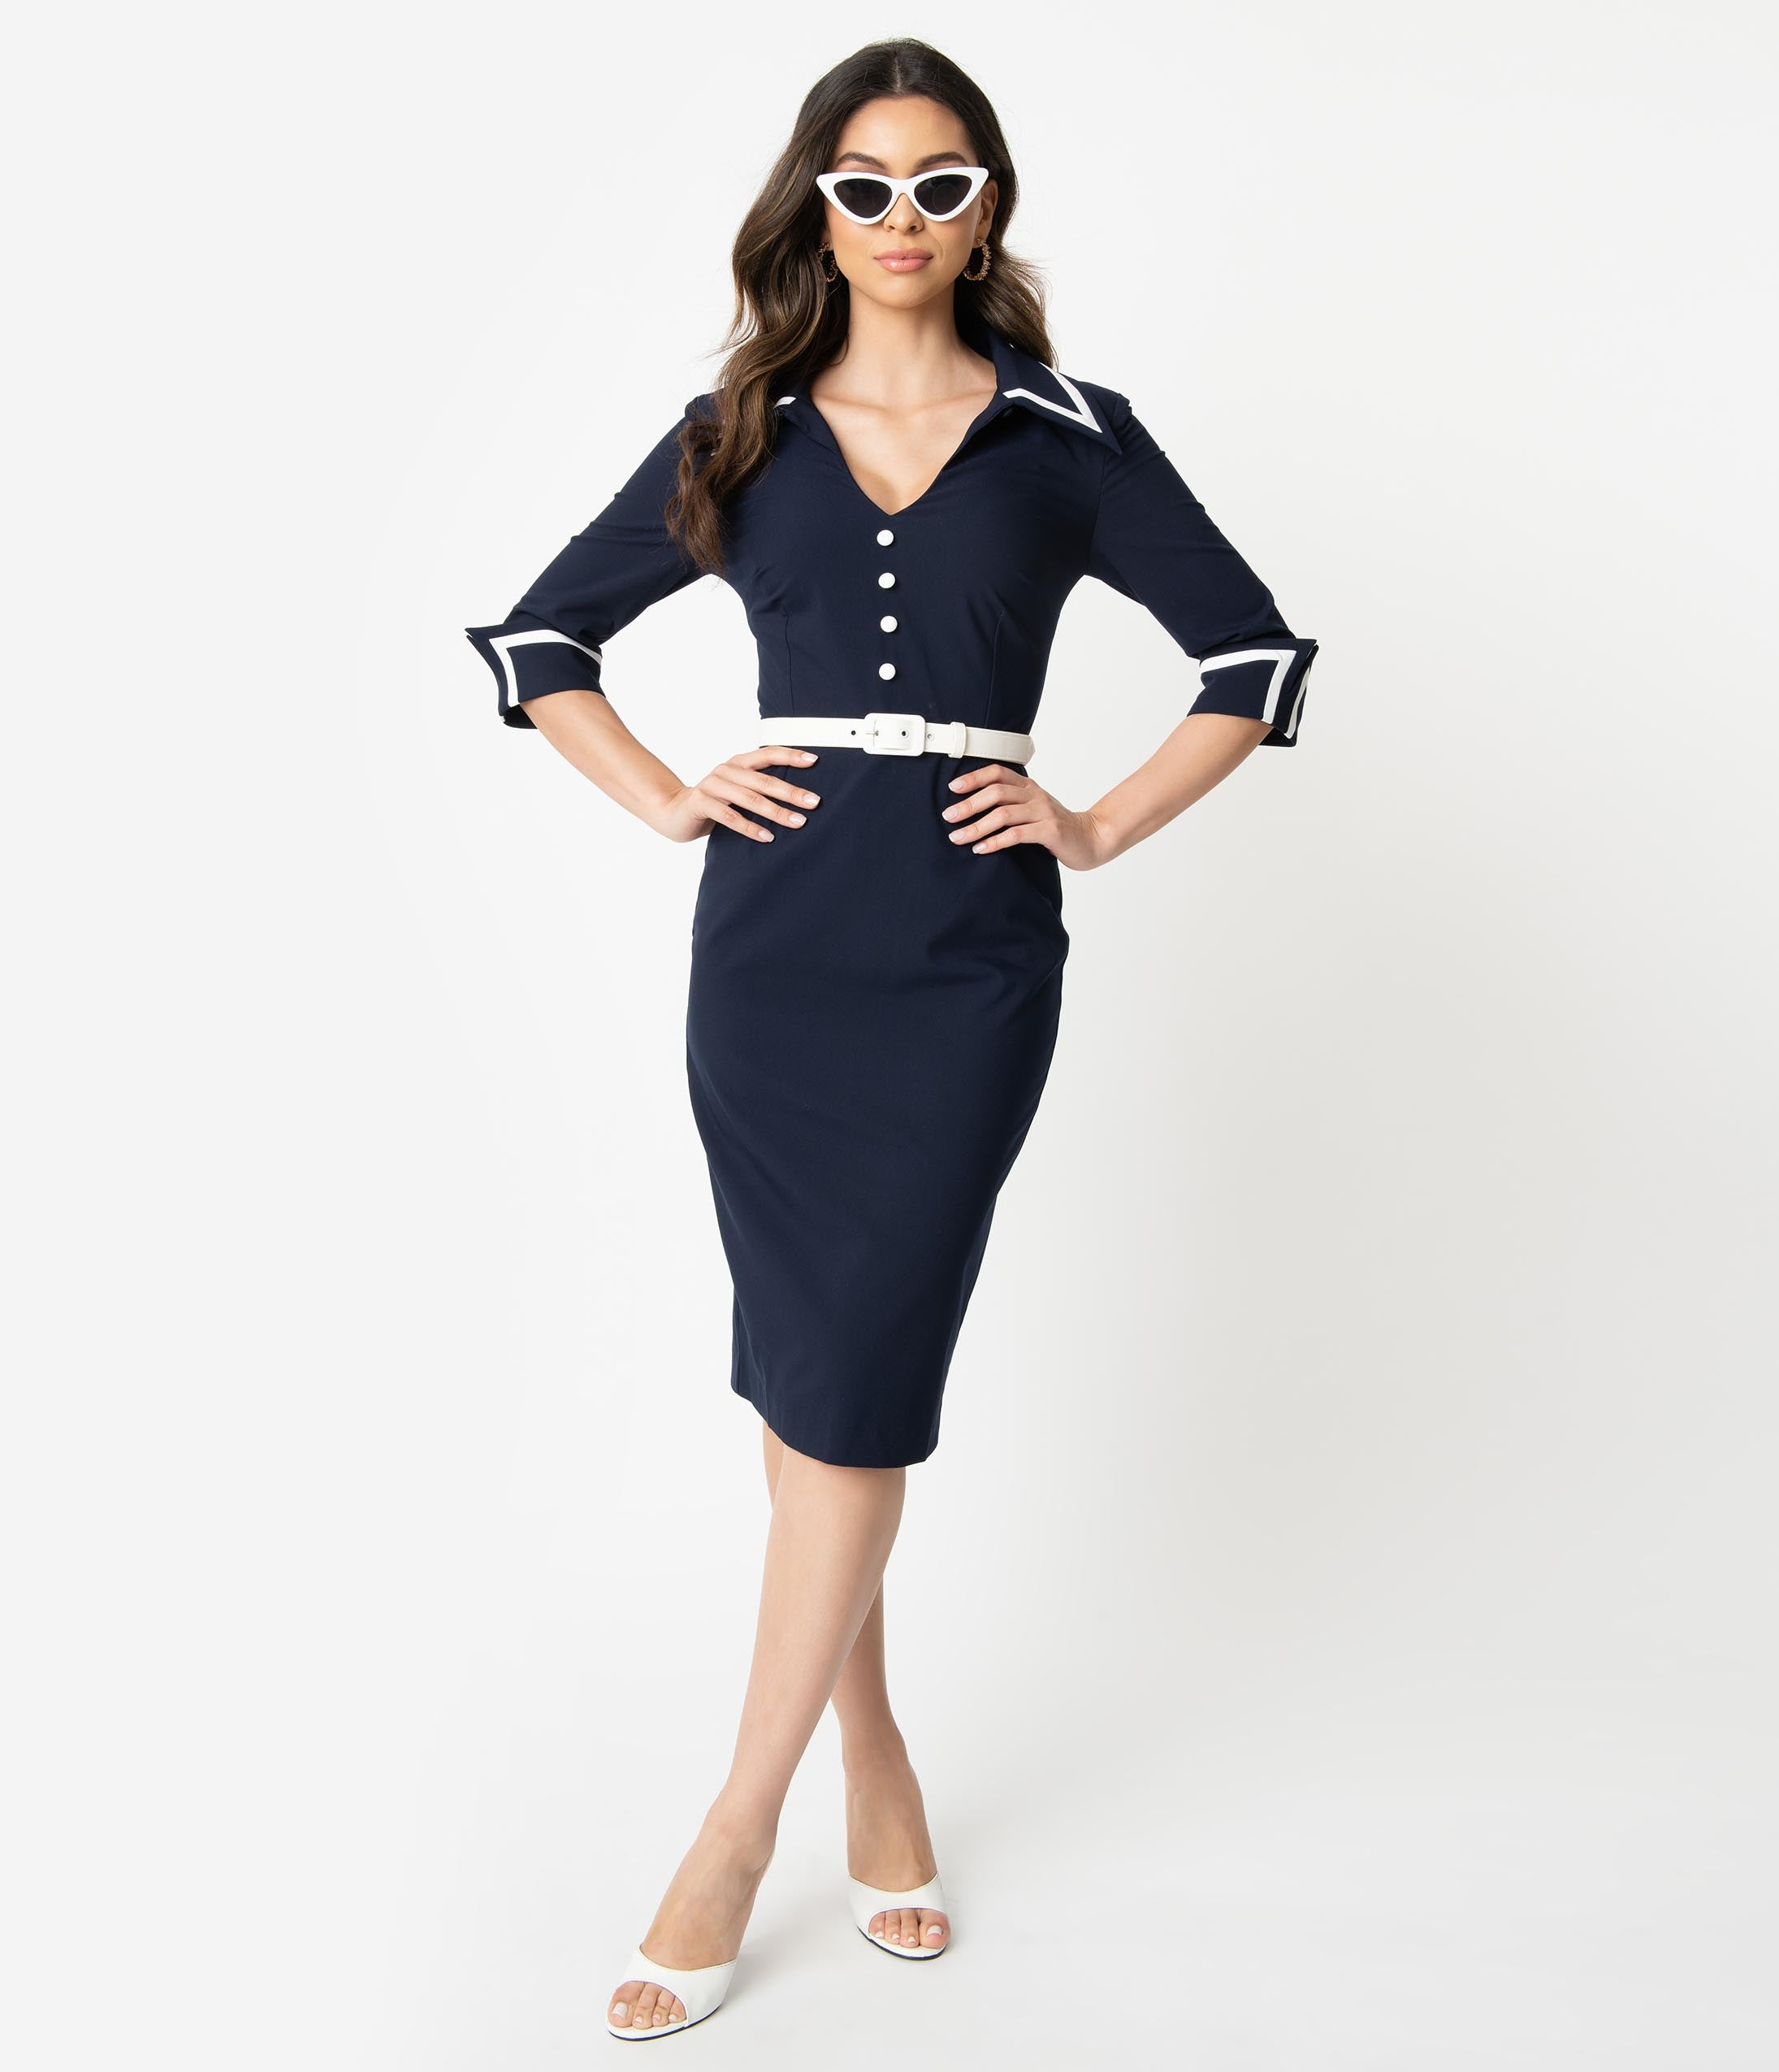 Wiggle Dresses | Pencil Dresses 40s, 50s, 60s Glamour Bunny 1960S Navy Blue Wing Cuff Gina Wiggle Dress $112.00 AT vintagedancer.com